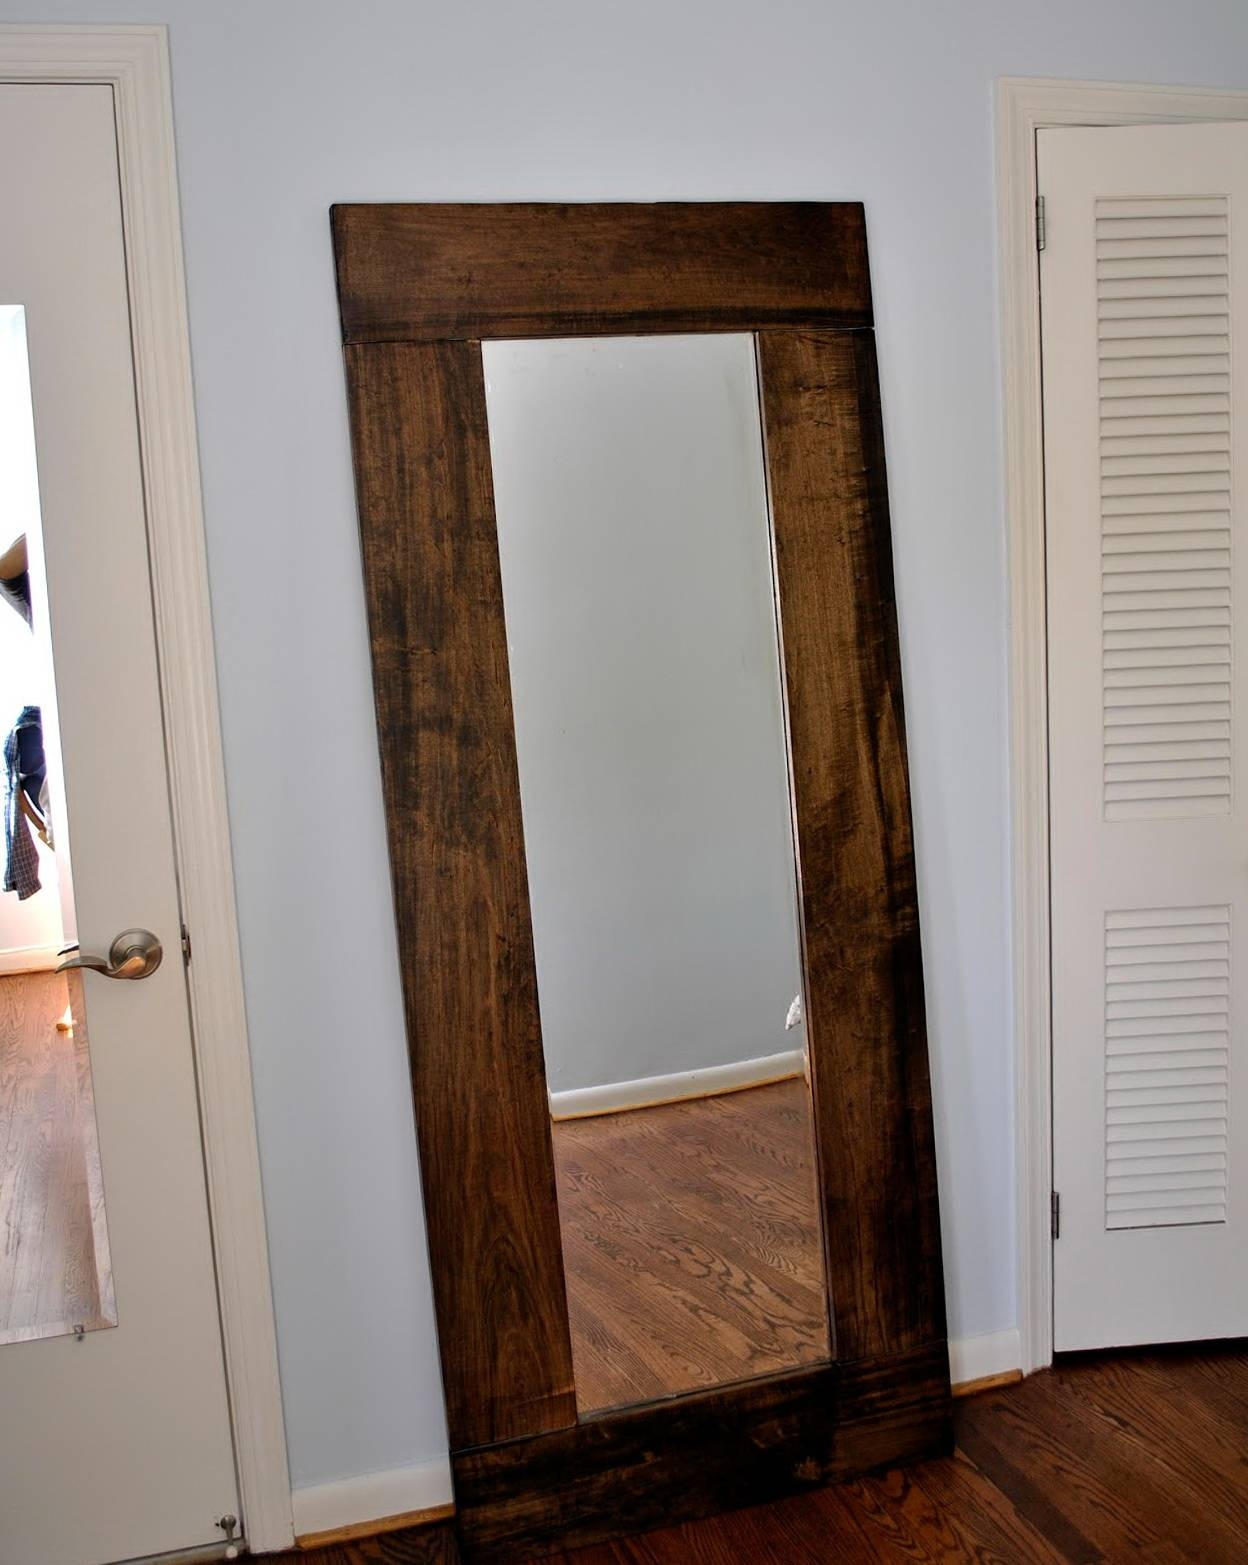 Stand up wall mirrors